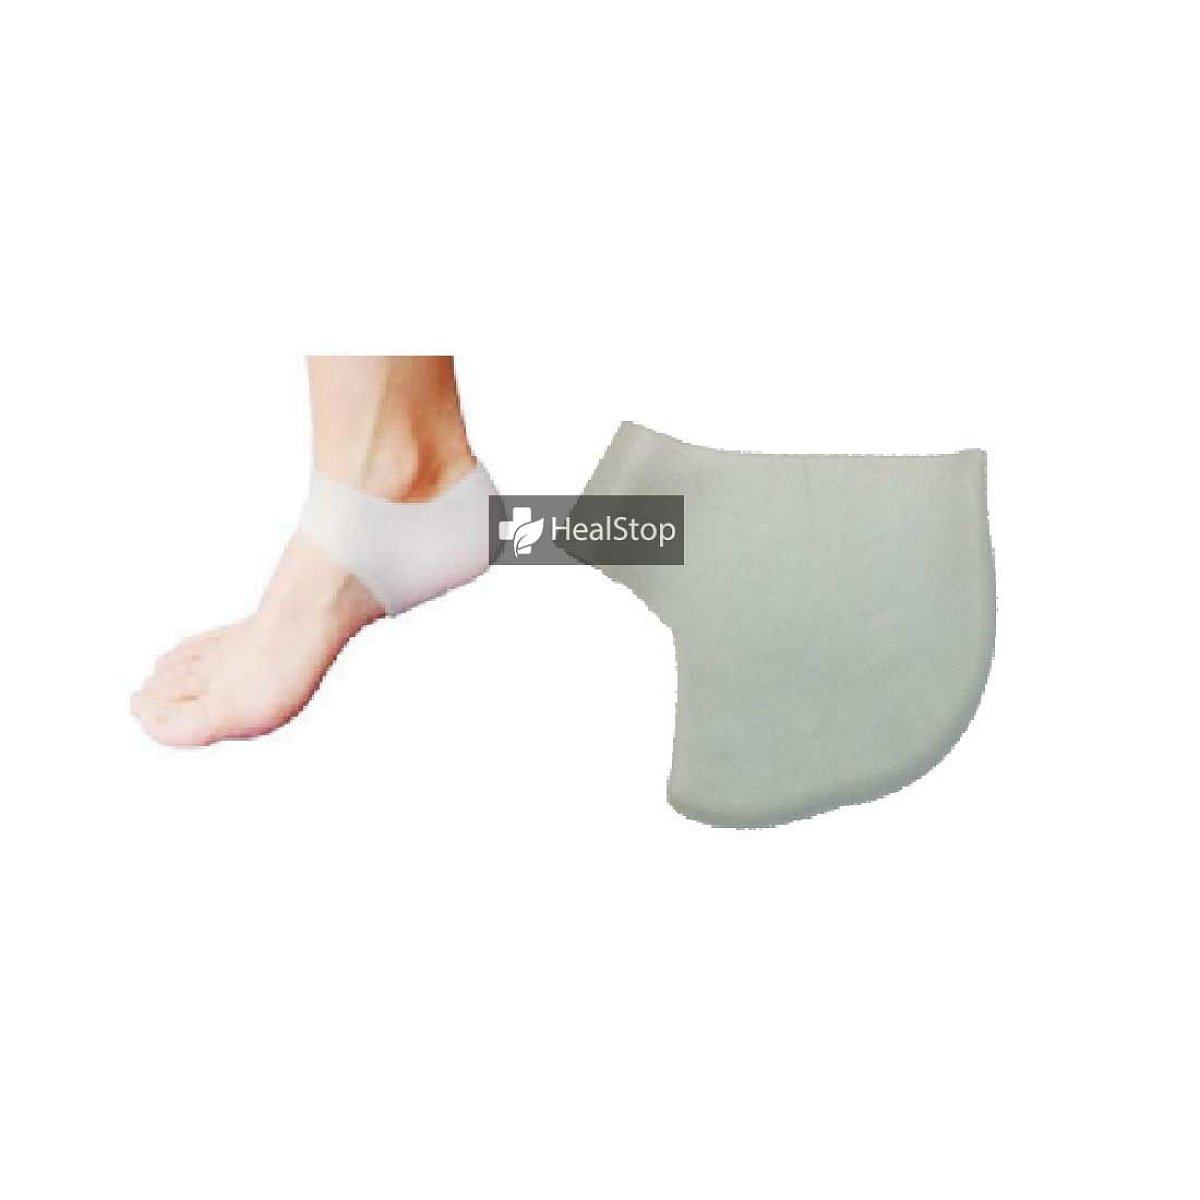 Heel Cup With Strip